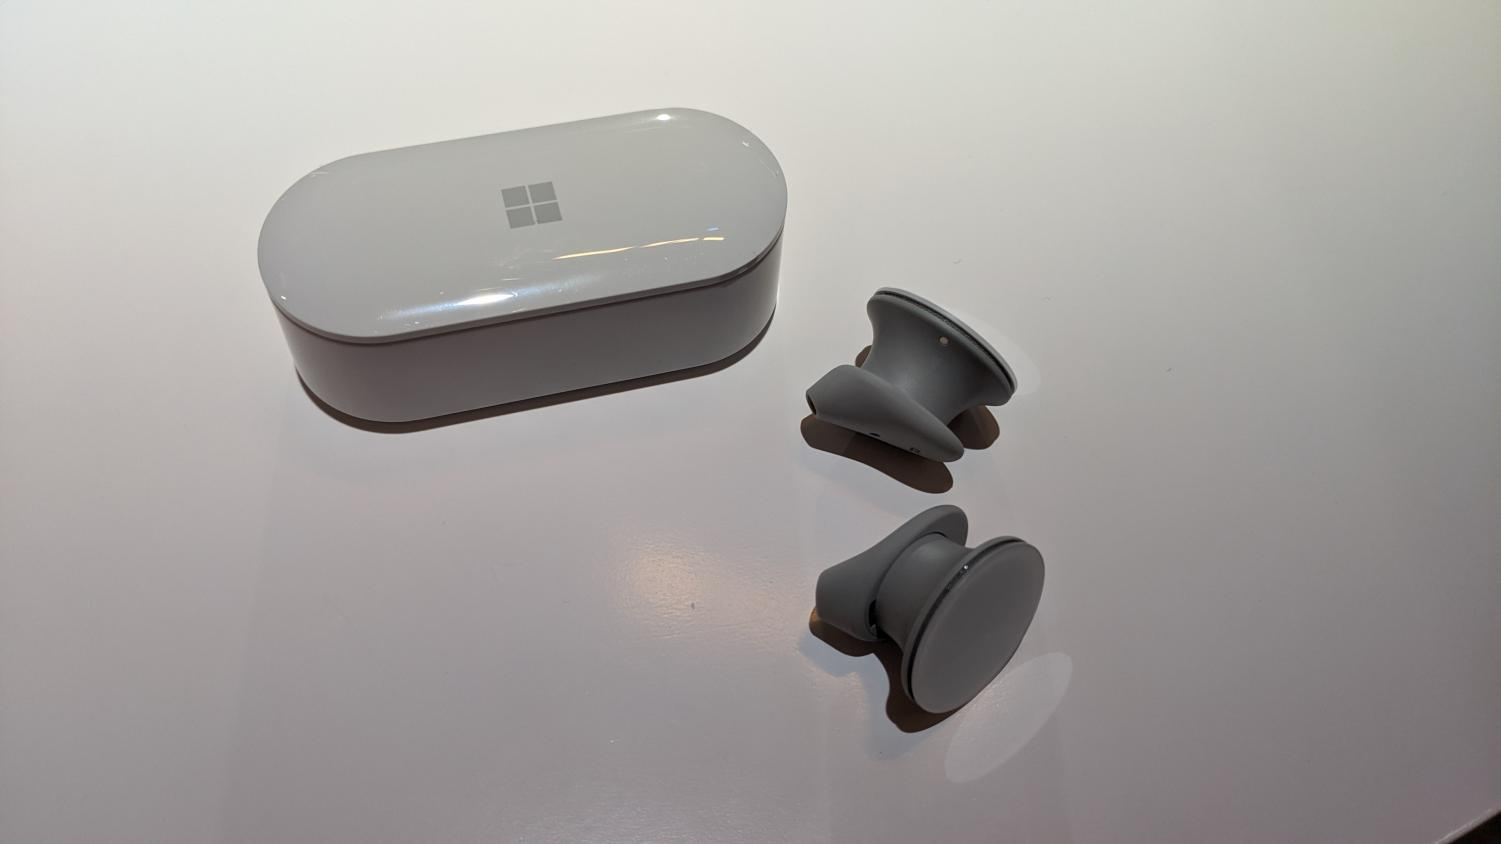 The Surface Earbuds and their carrying case.